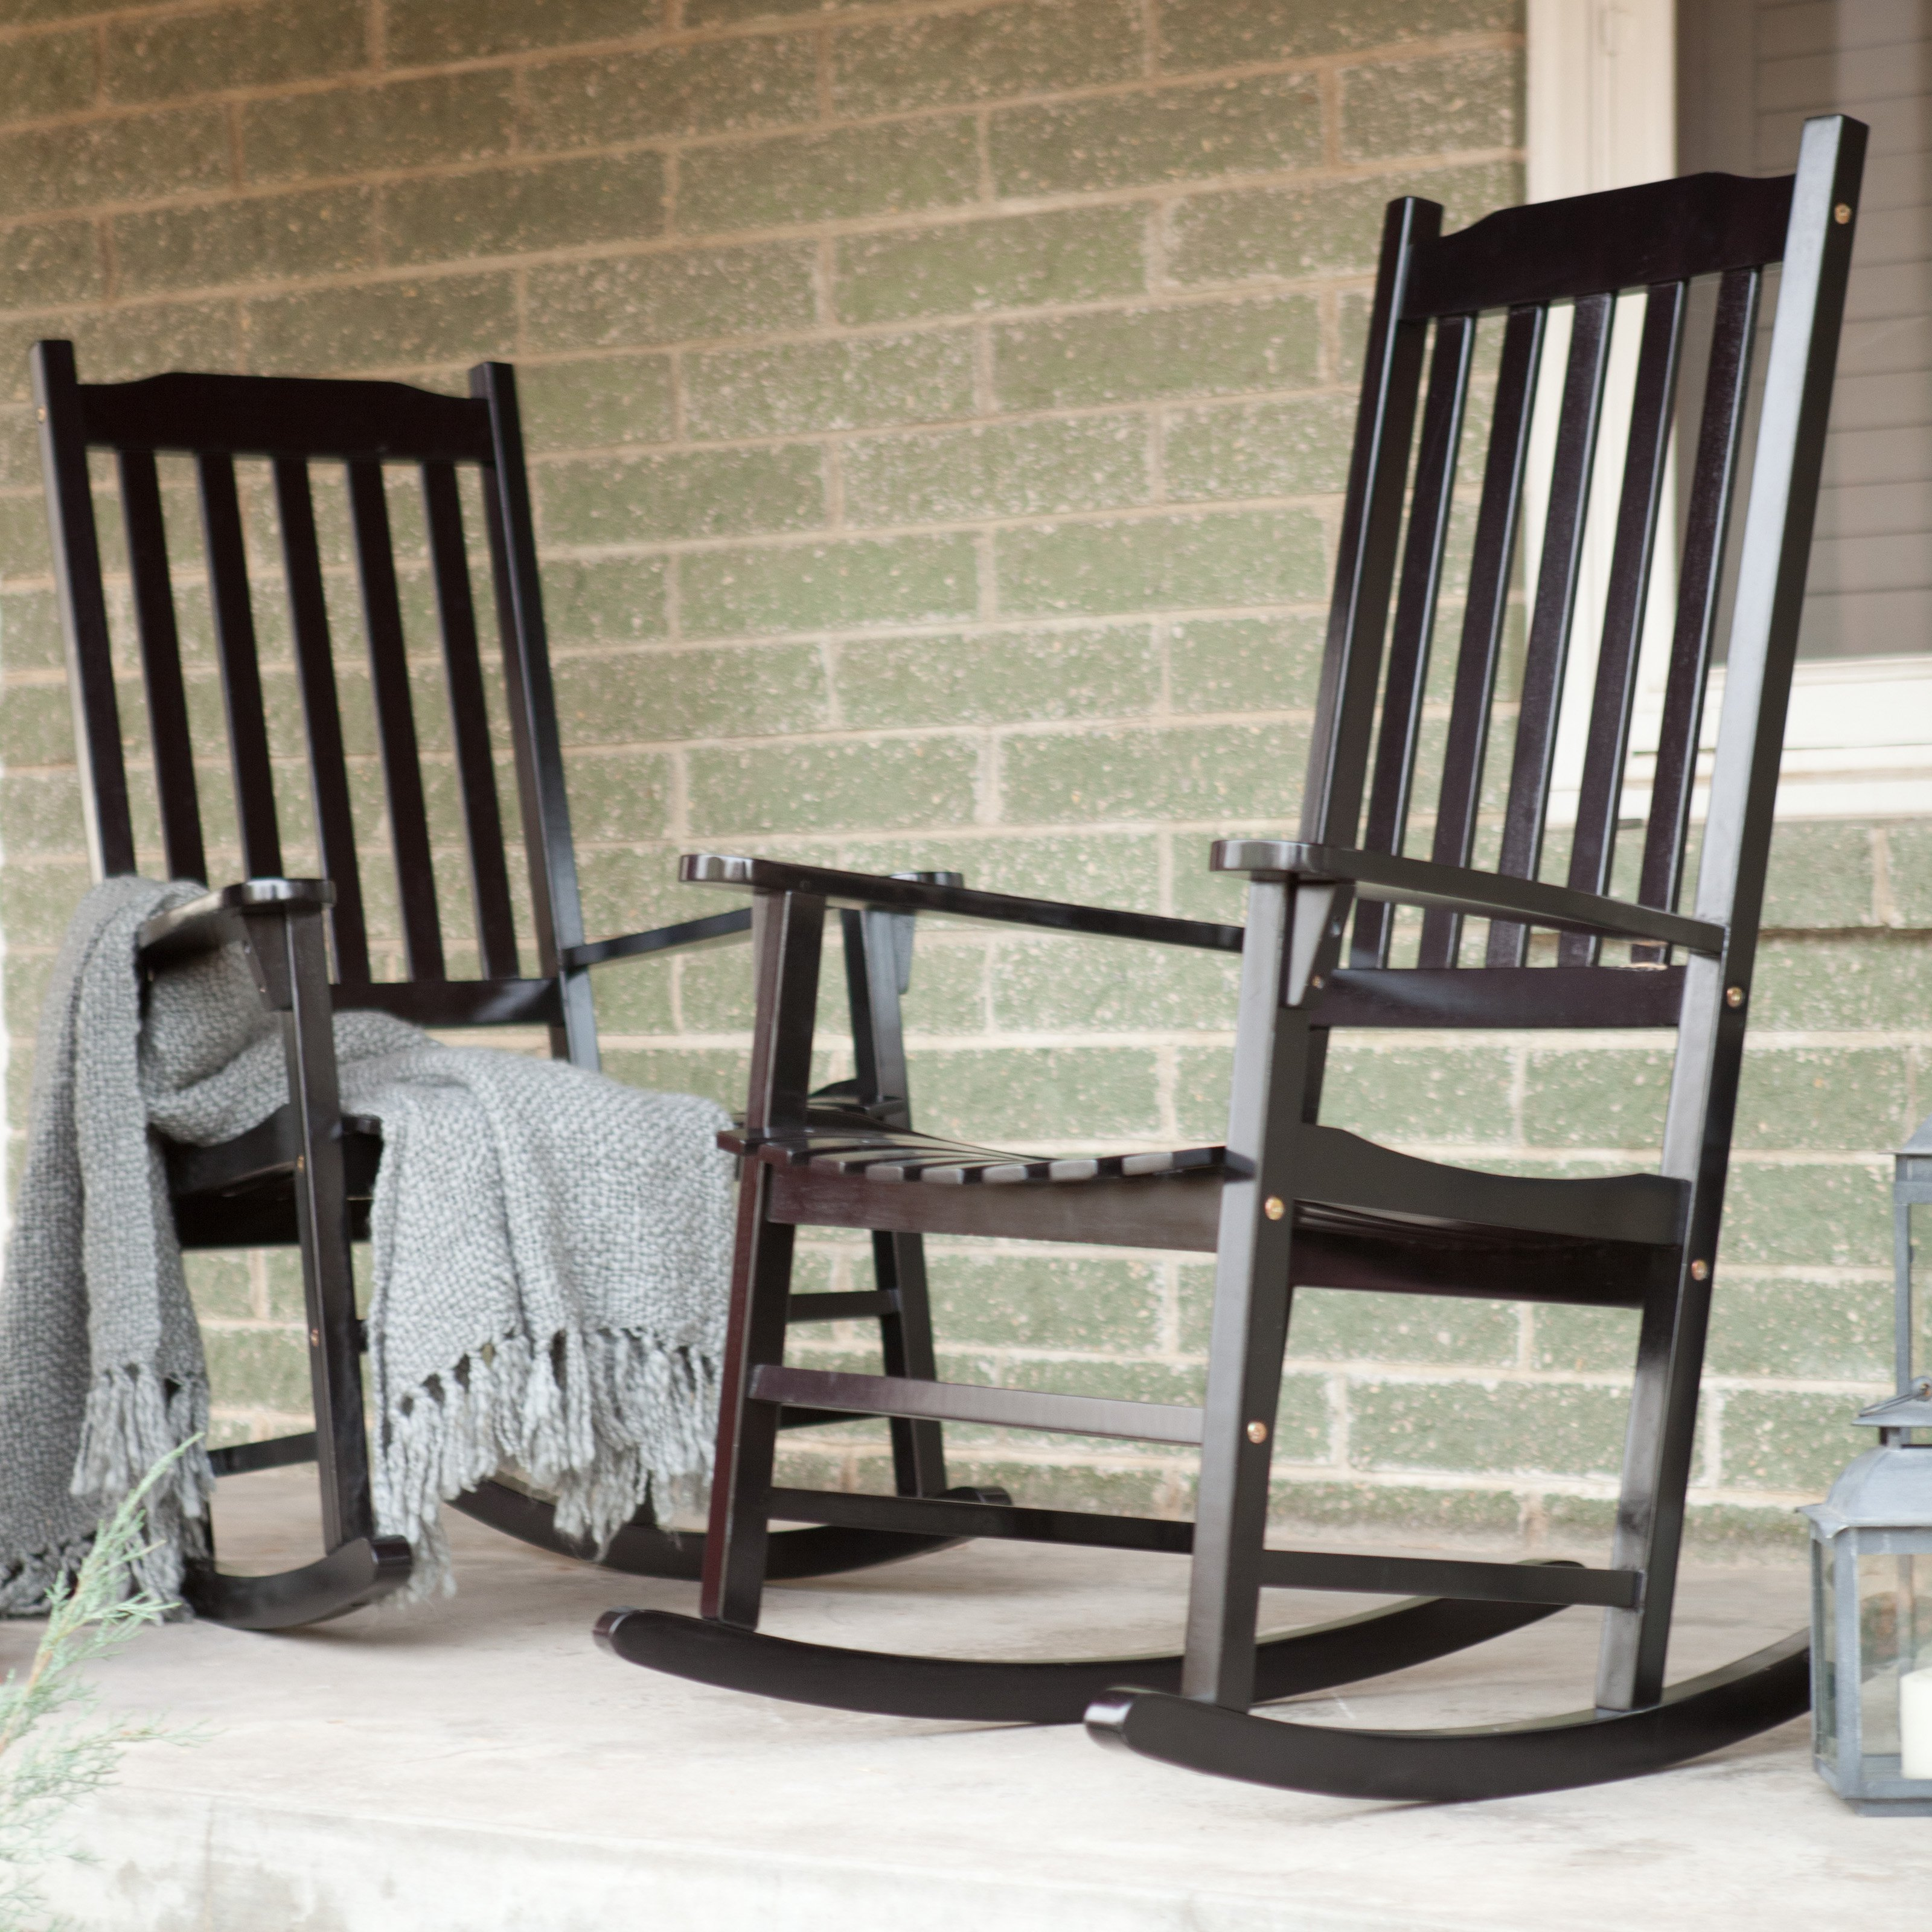 Pair Of Coral Coast Indoor/Outdoor Mission Slat Rocking Chair - Black